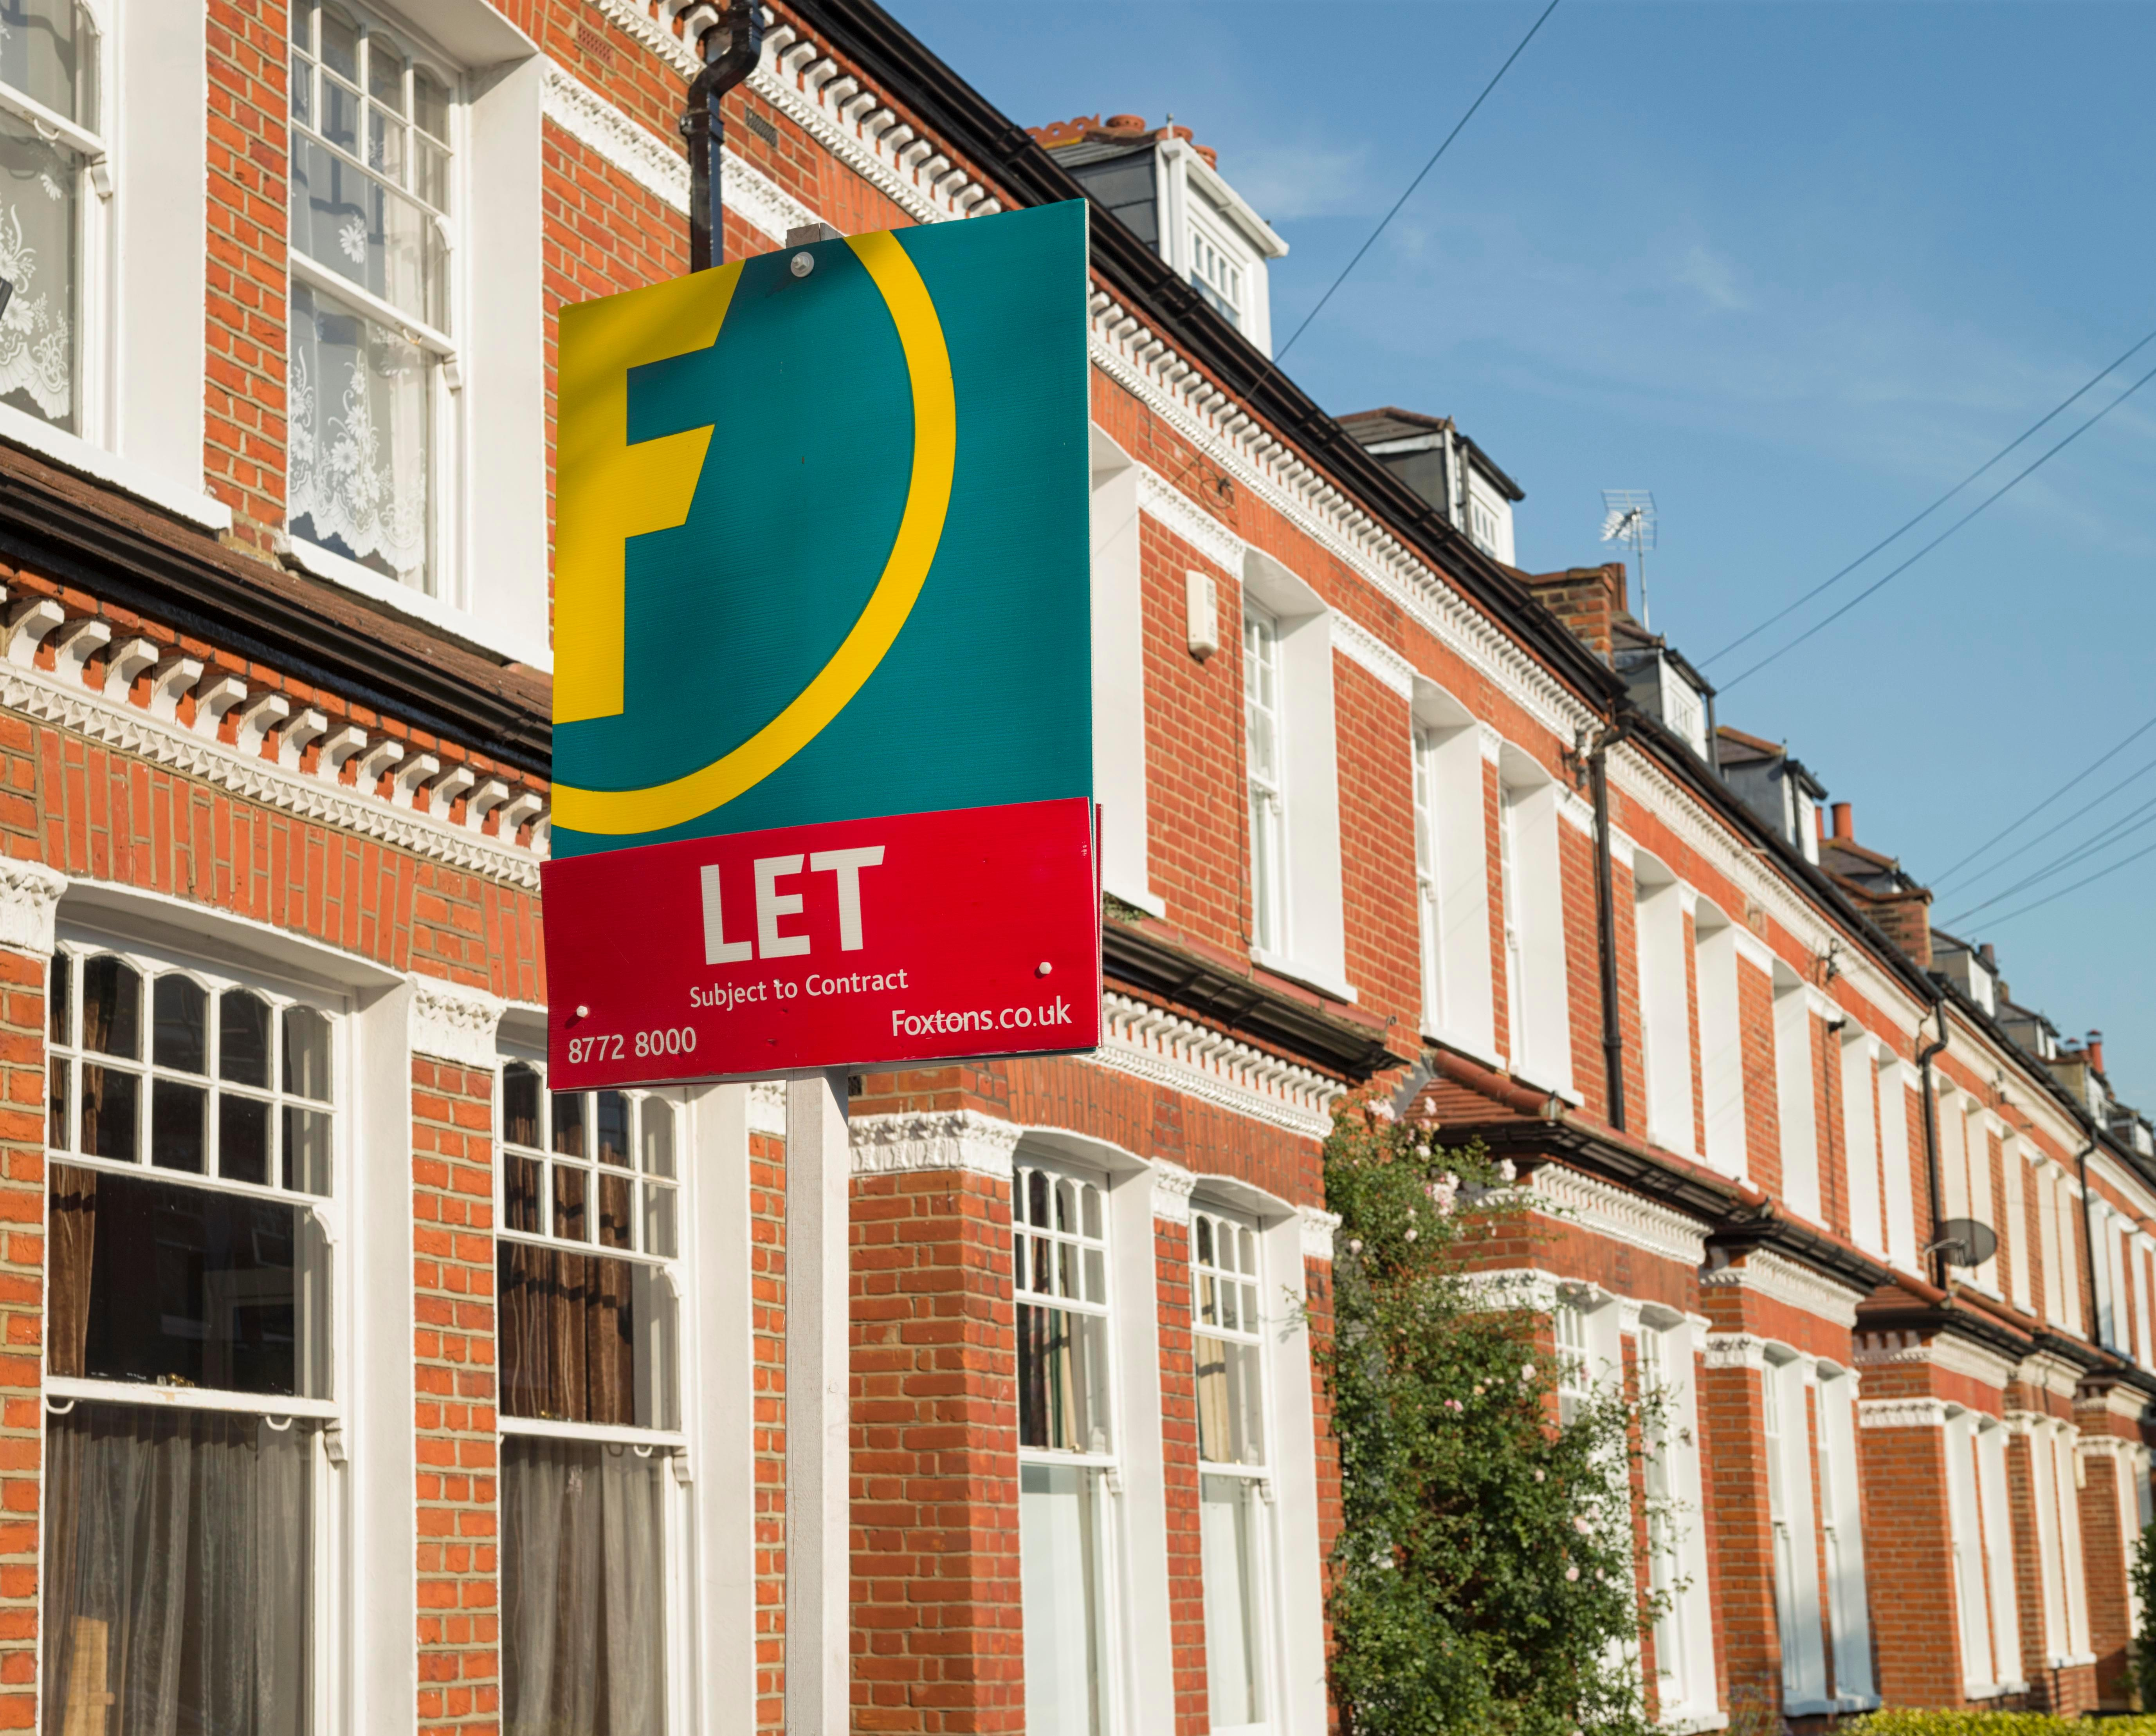 Letting fee ban could 'push up rents' for tenants by more than £100 a year